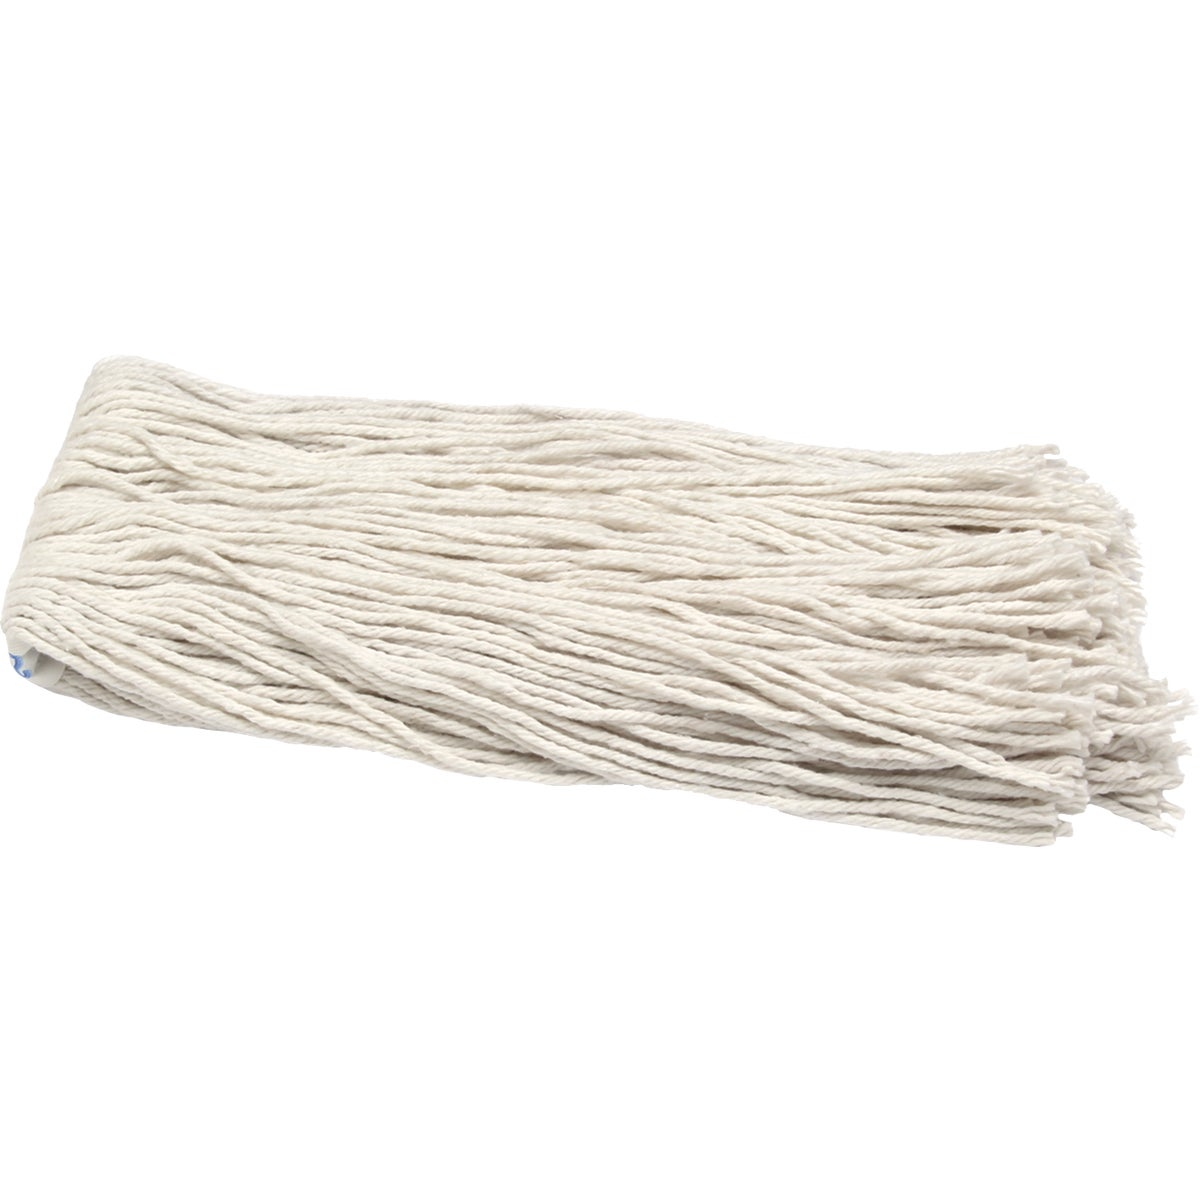 #32 COTTON MOP HEAD - 203201 by Harper Brush Incom